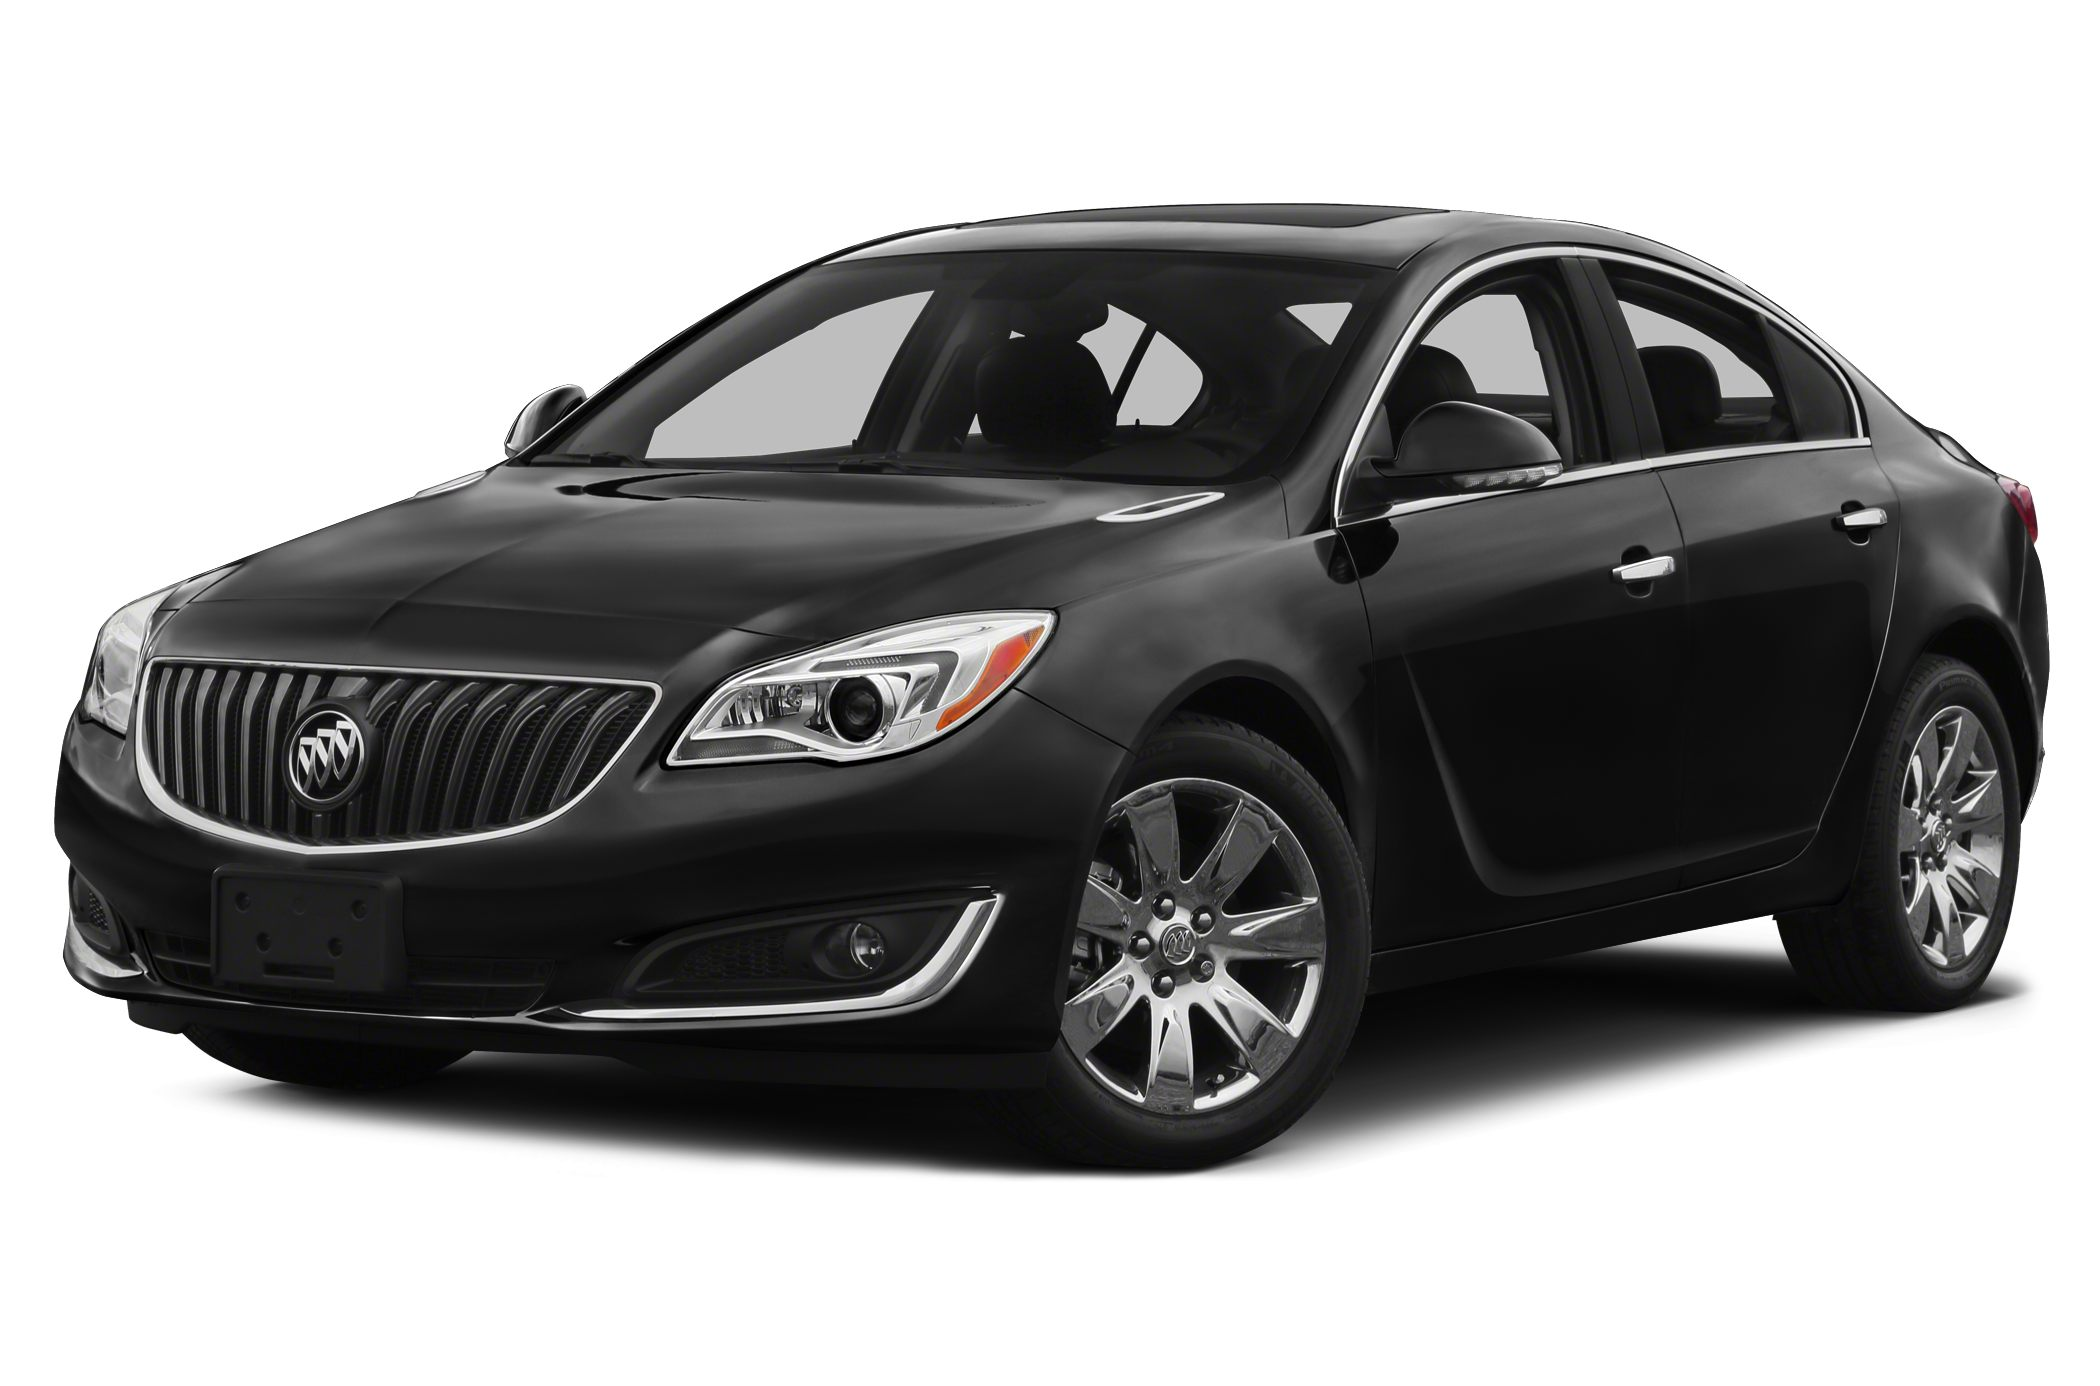 2014 Buick Regal Turbo Sedan for sale in West Plains for $32,410 with 0 miles.